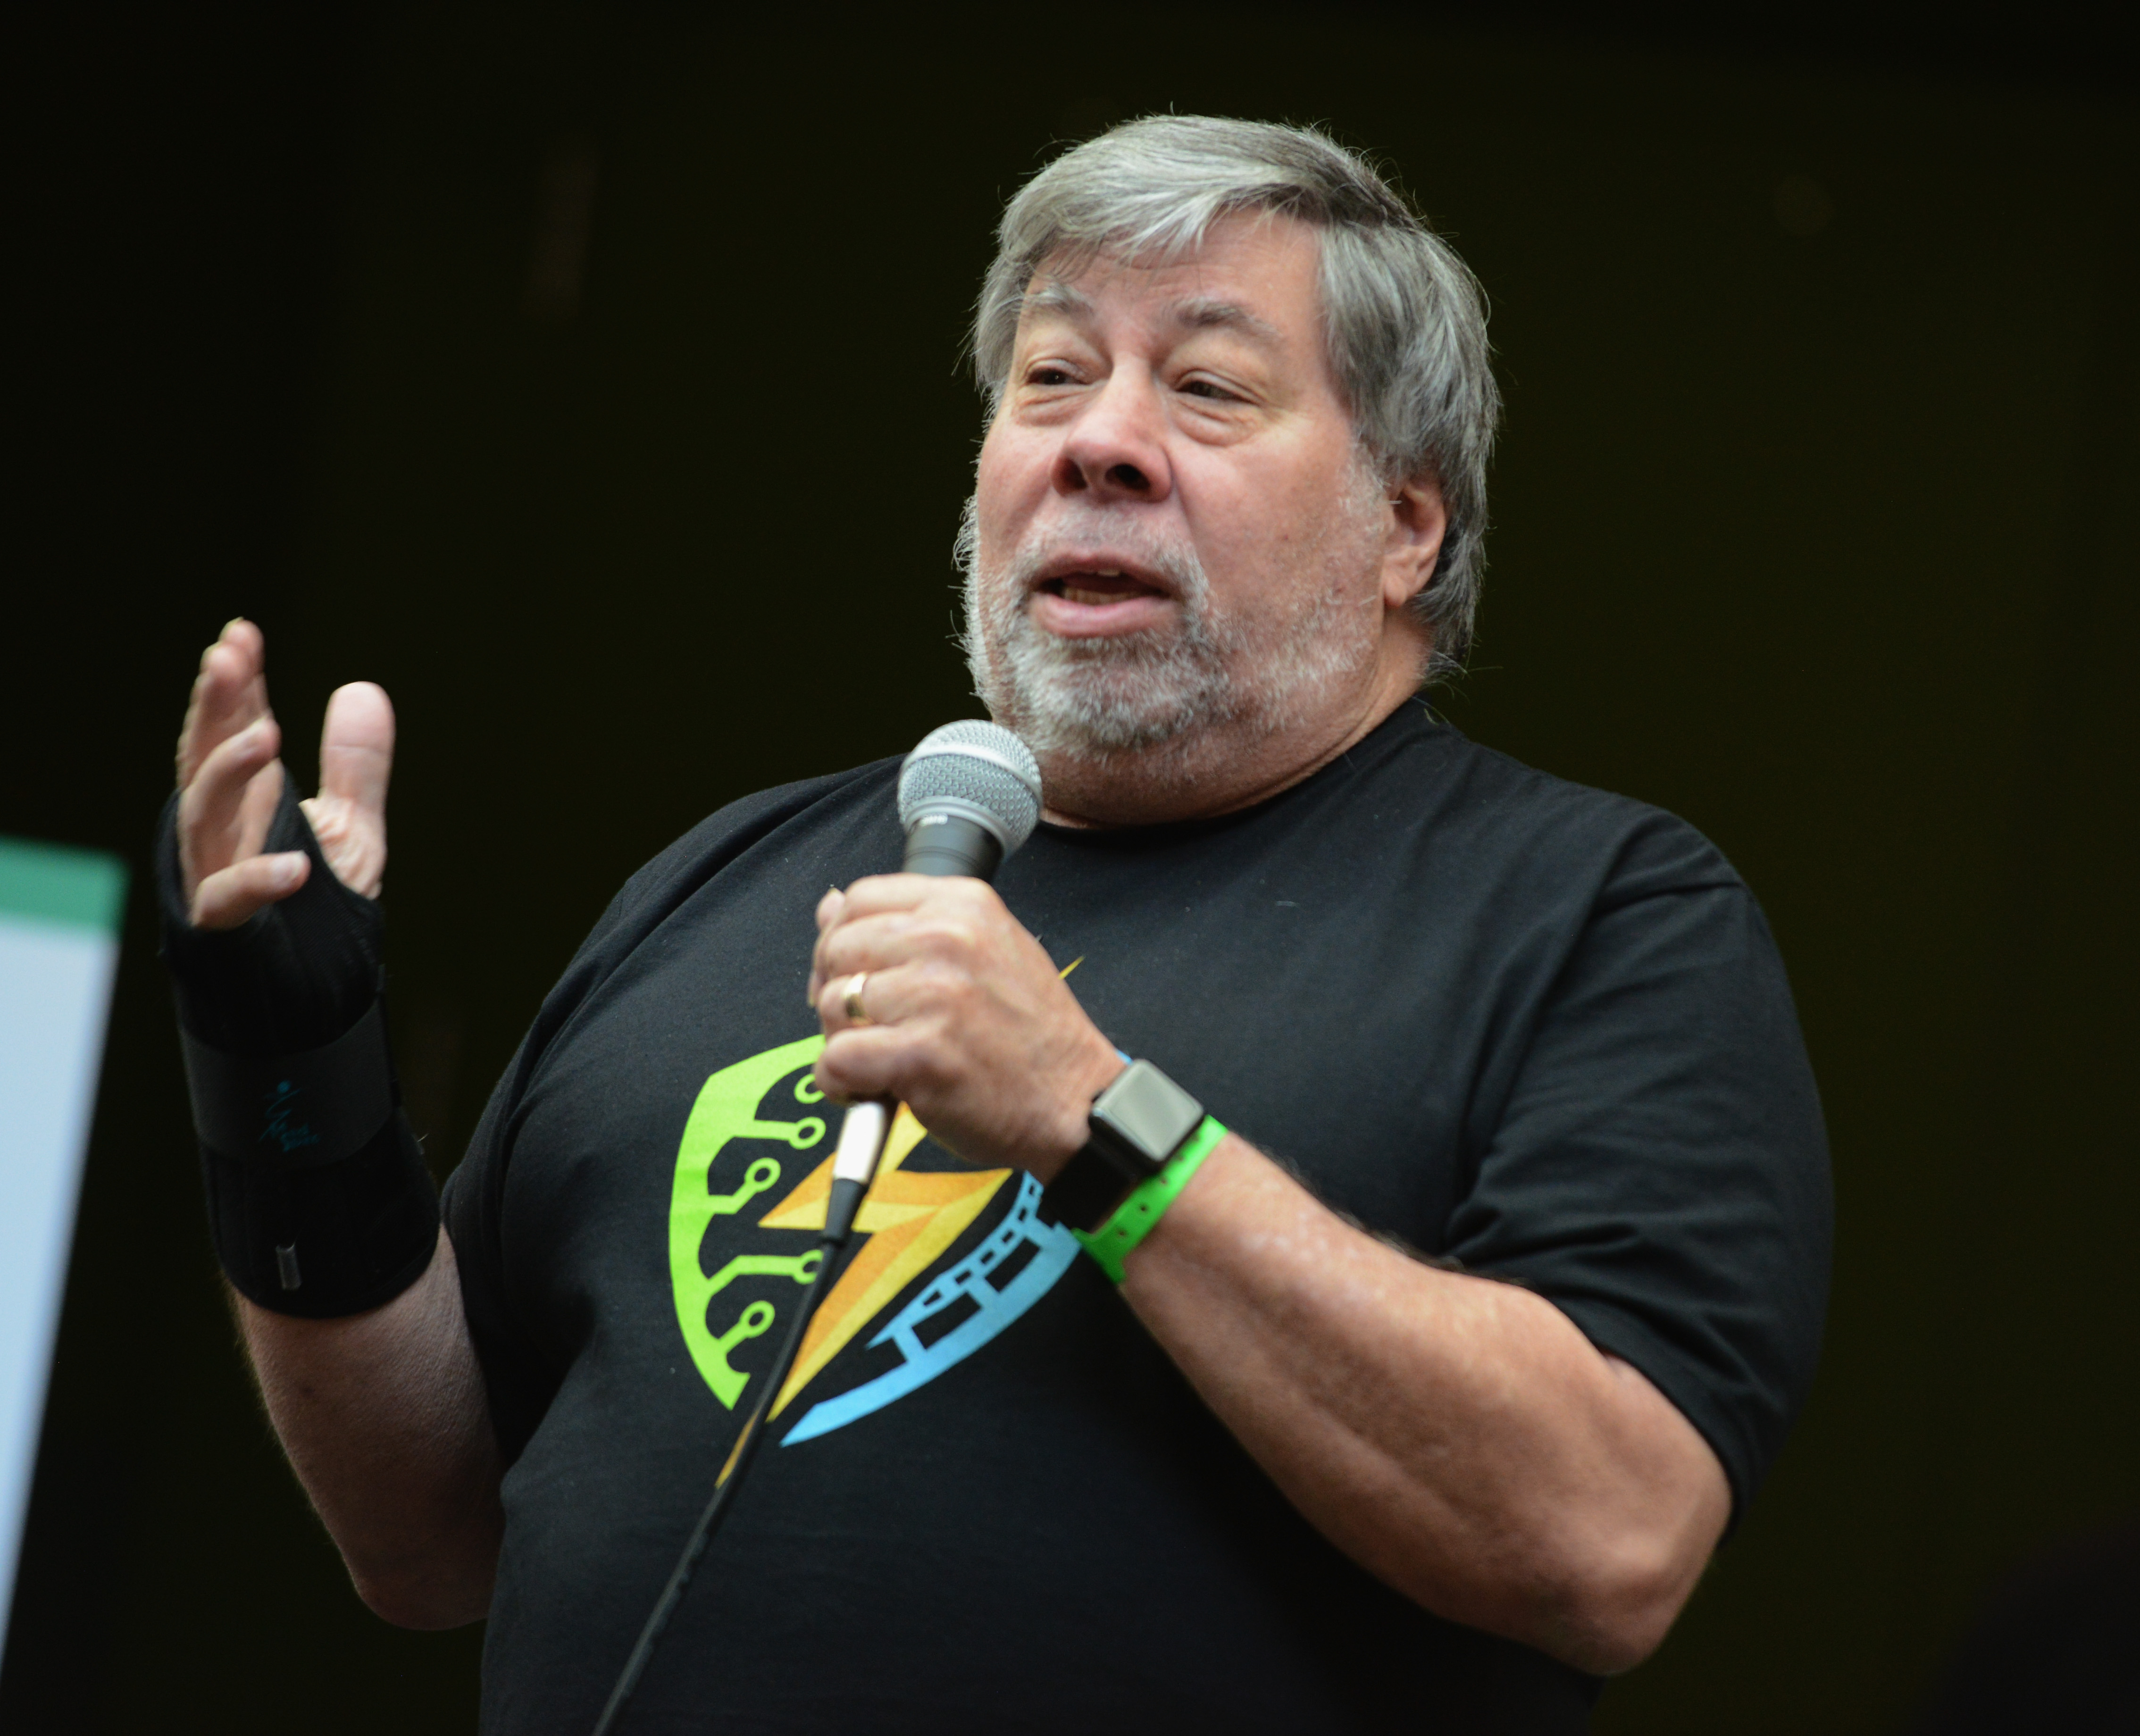 Steve Wozniak opens the Silicon Valley Comic Con 2017 held at San Jose Convention Center on April 22, 2017 in San Jose, California.